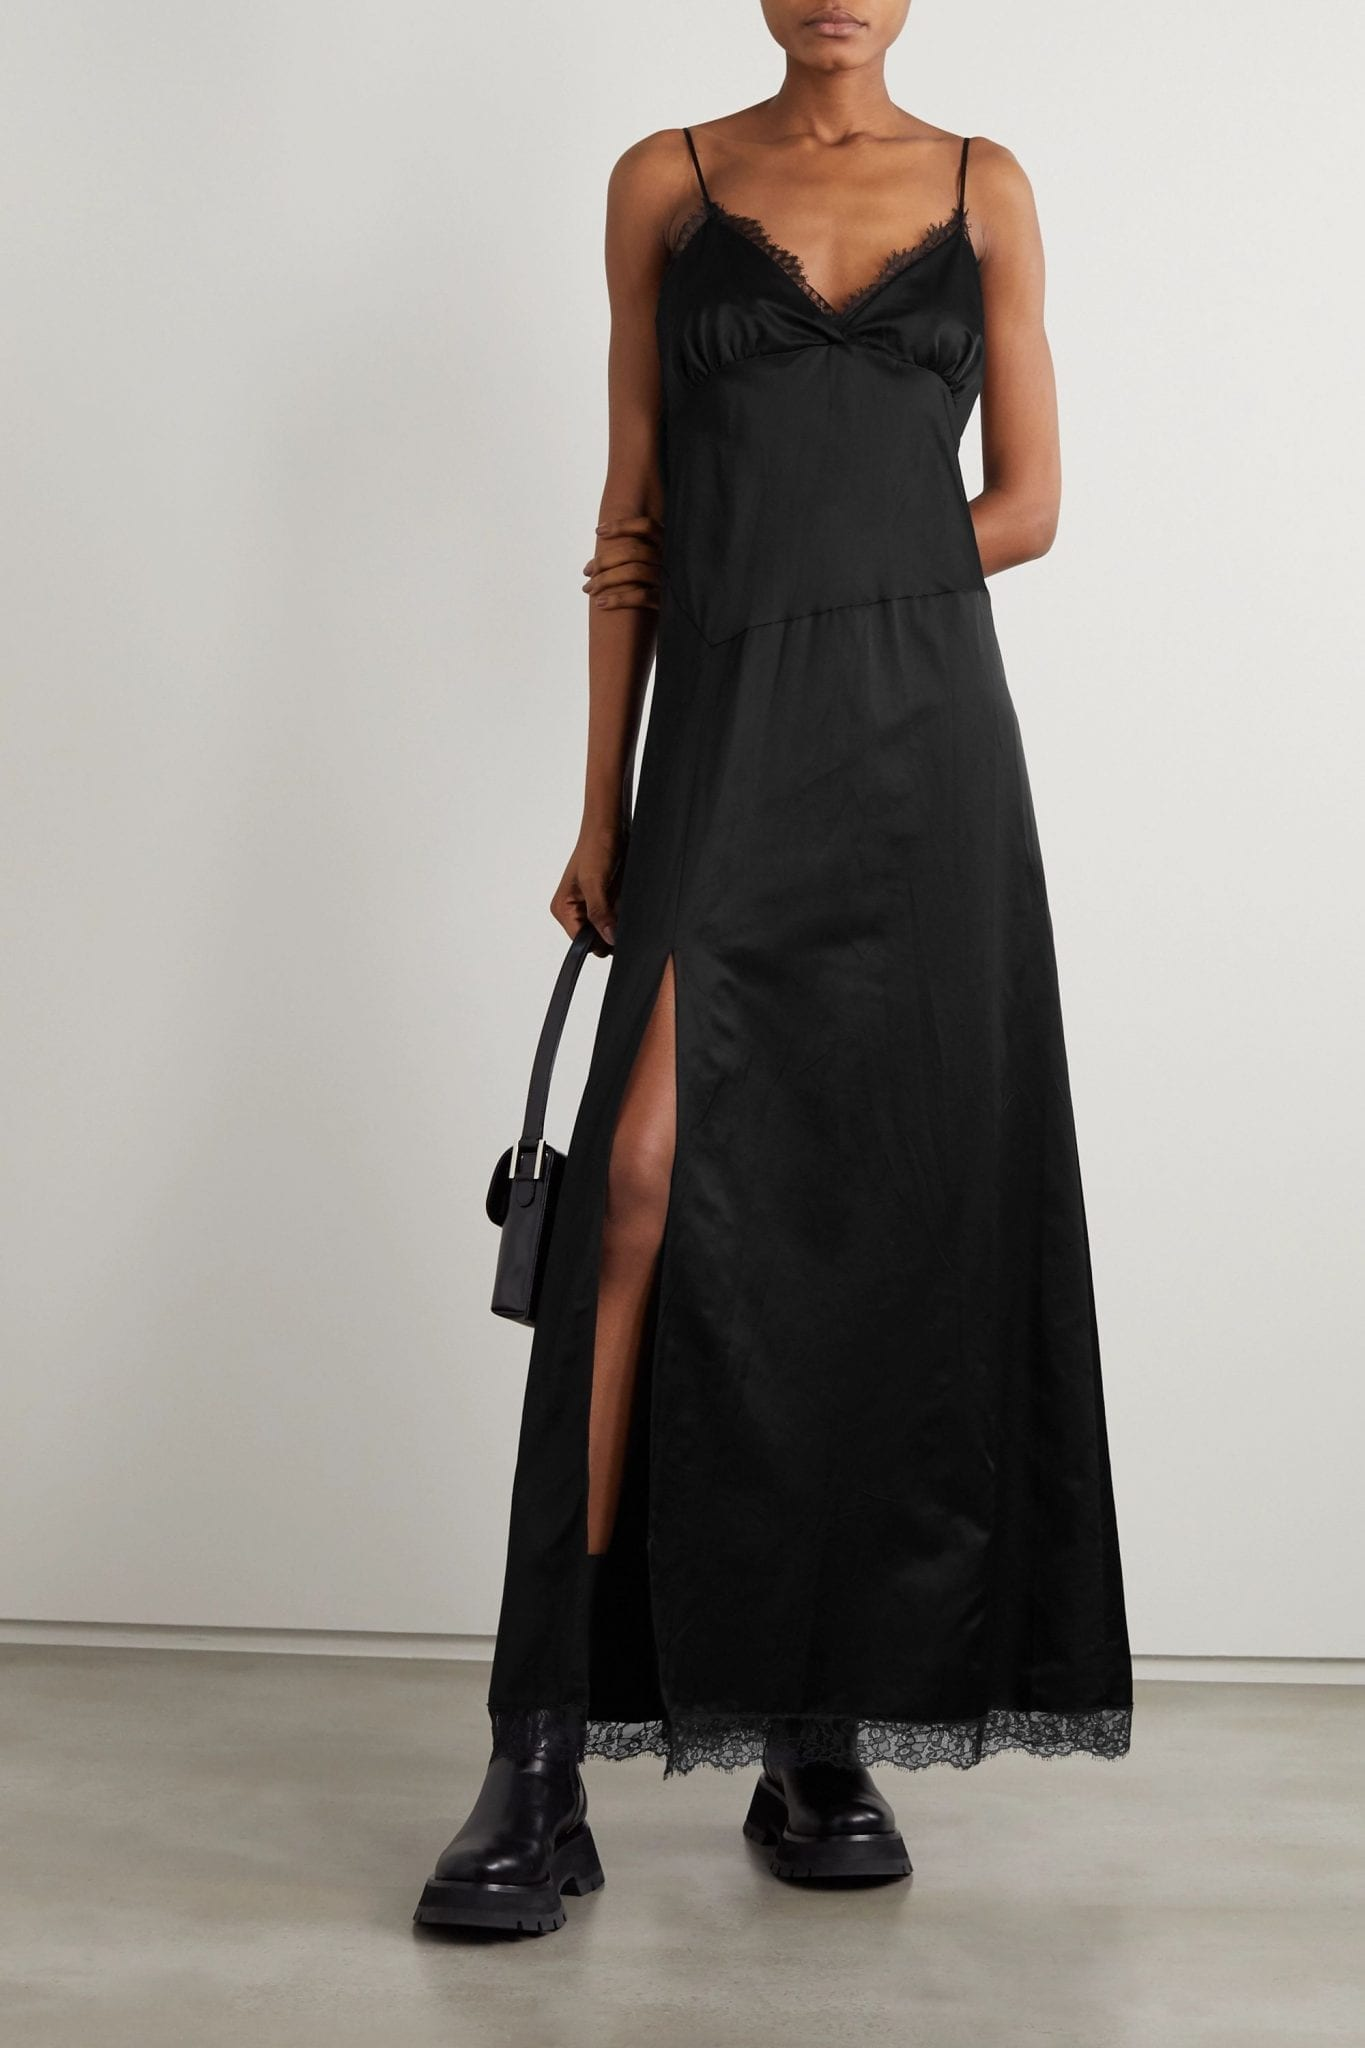 MM6 MAISON MARGIELA Lace-trimmed Cotton-blend Satin Maxi Dress